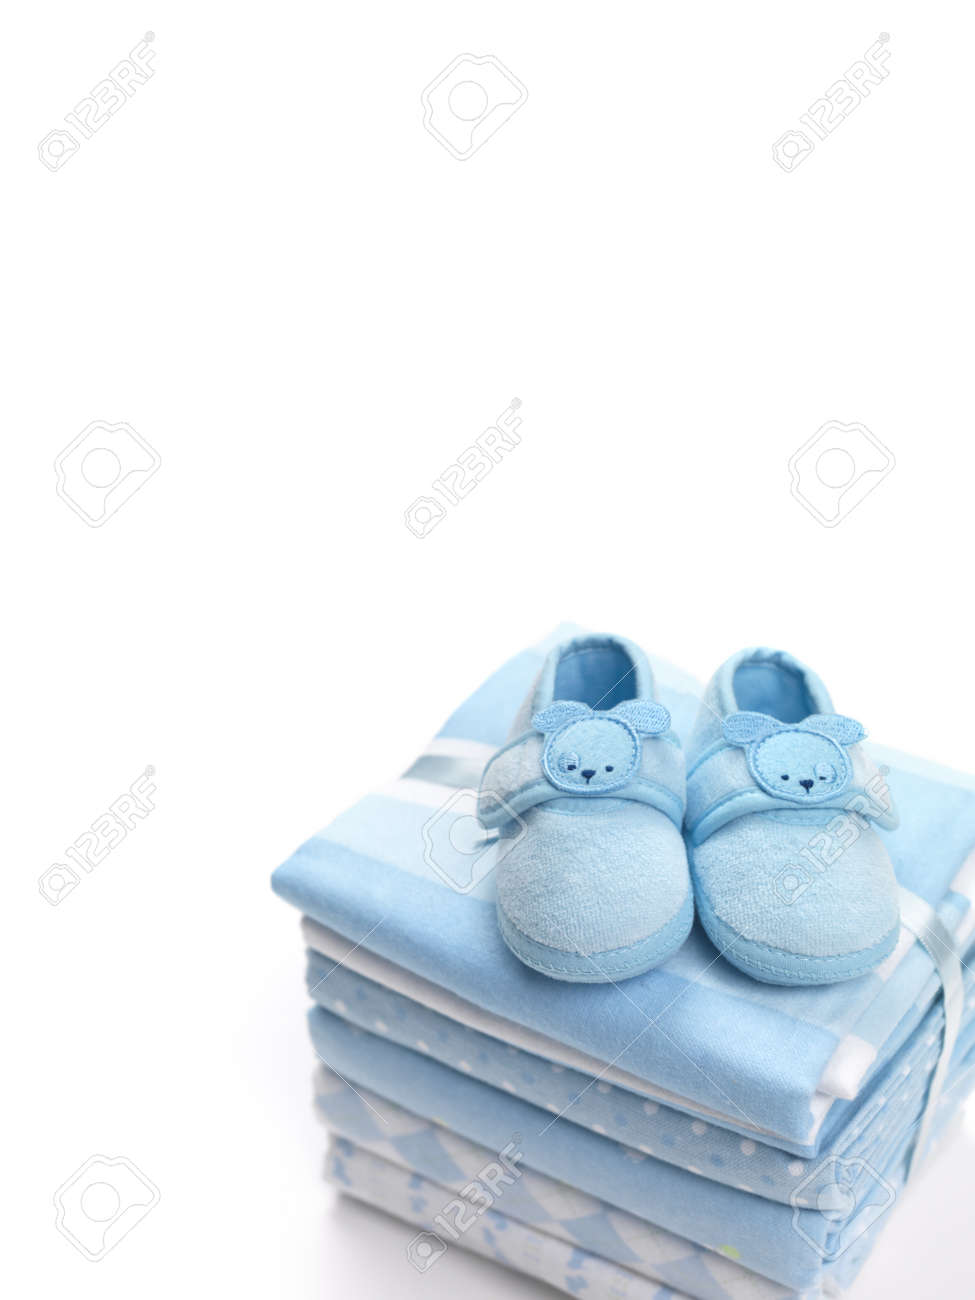 Cute Blue Baby Boy Shoes On A Pile Of